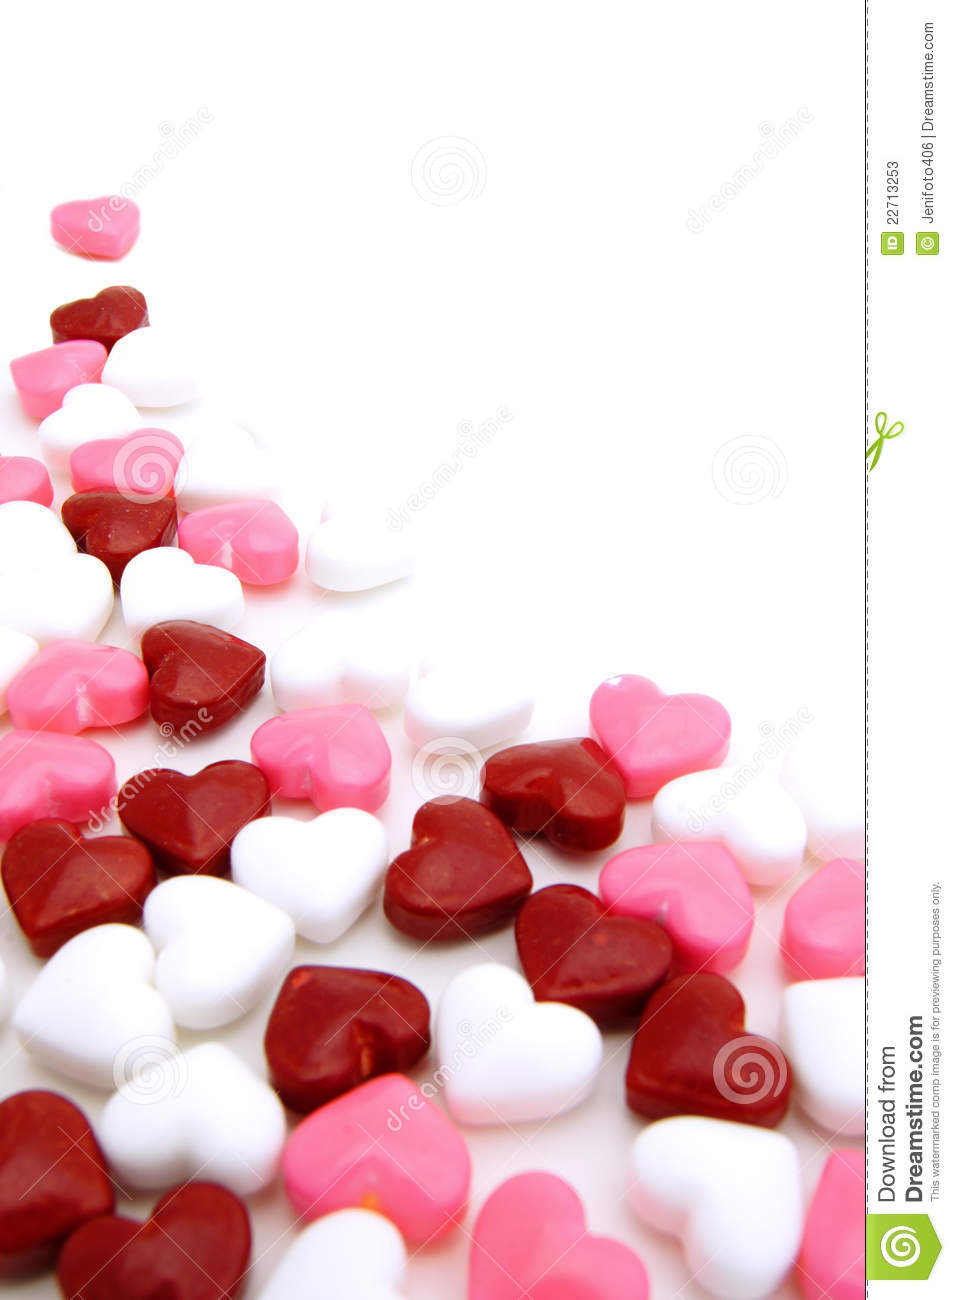 Valentines Day Candy Background Stock Photos - Image: 22713253